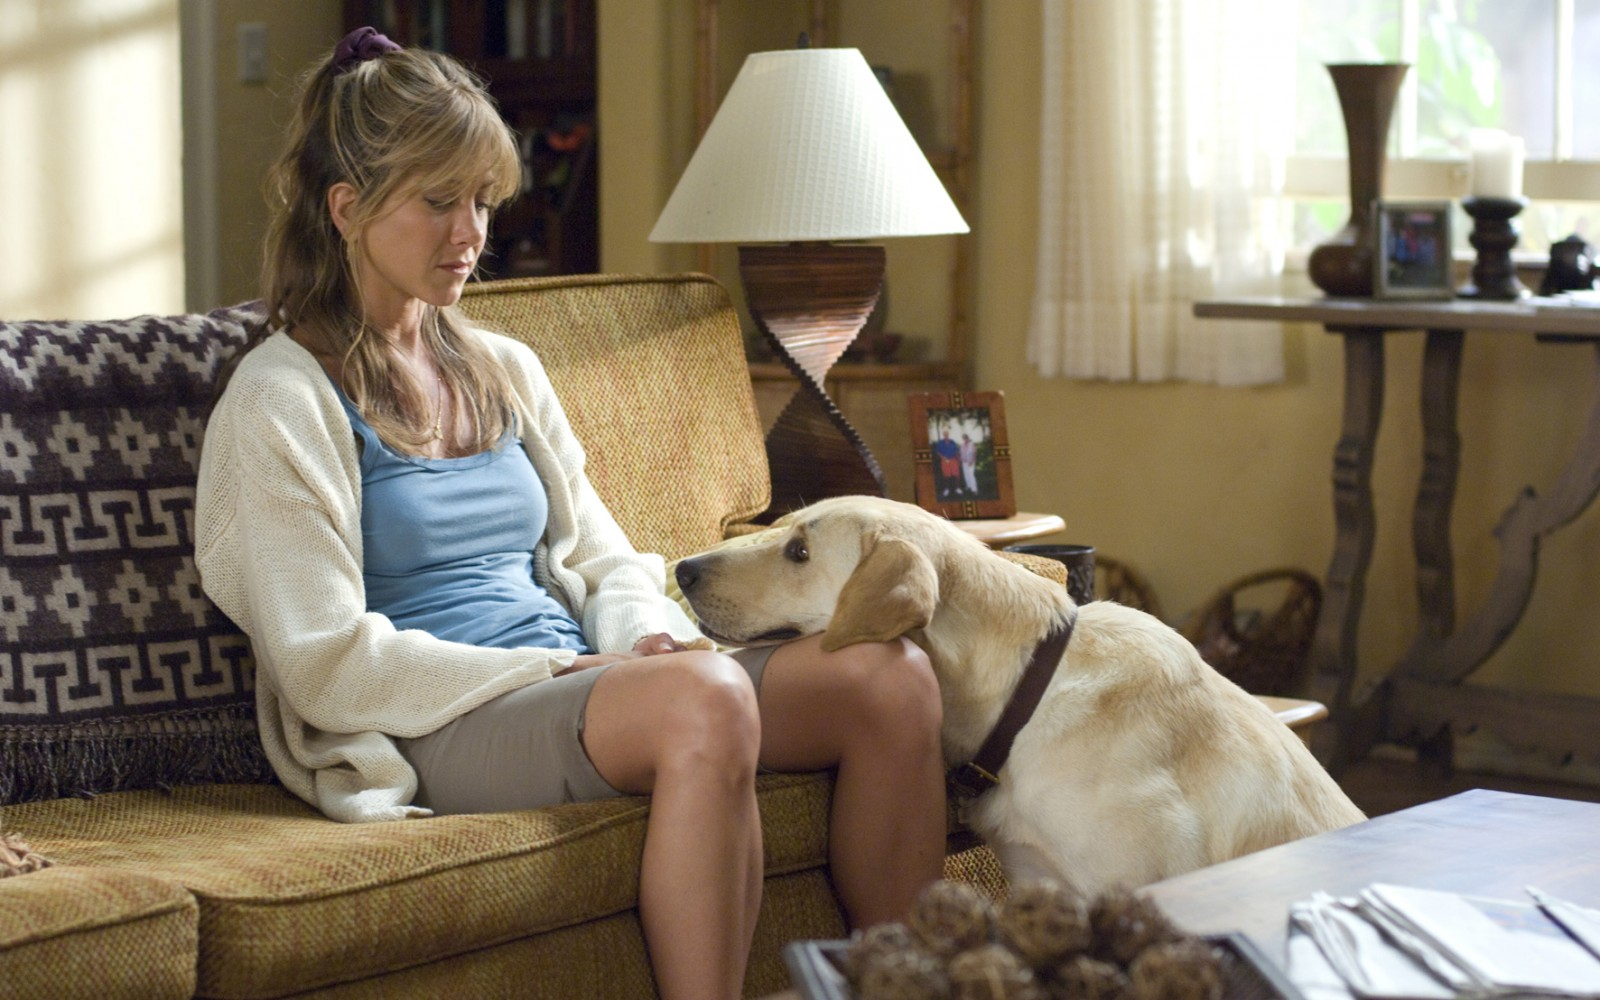 13 Quotes From 'Marley & Me' That Will Melt Your Heart And Make You Want To Squeeze Your Furry Friend